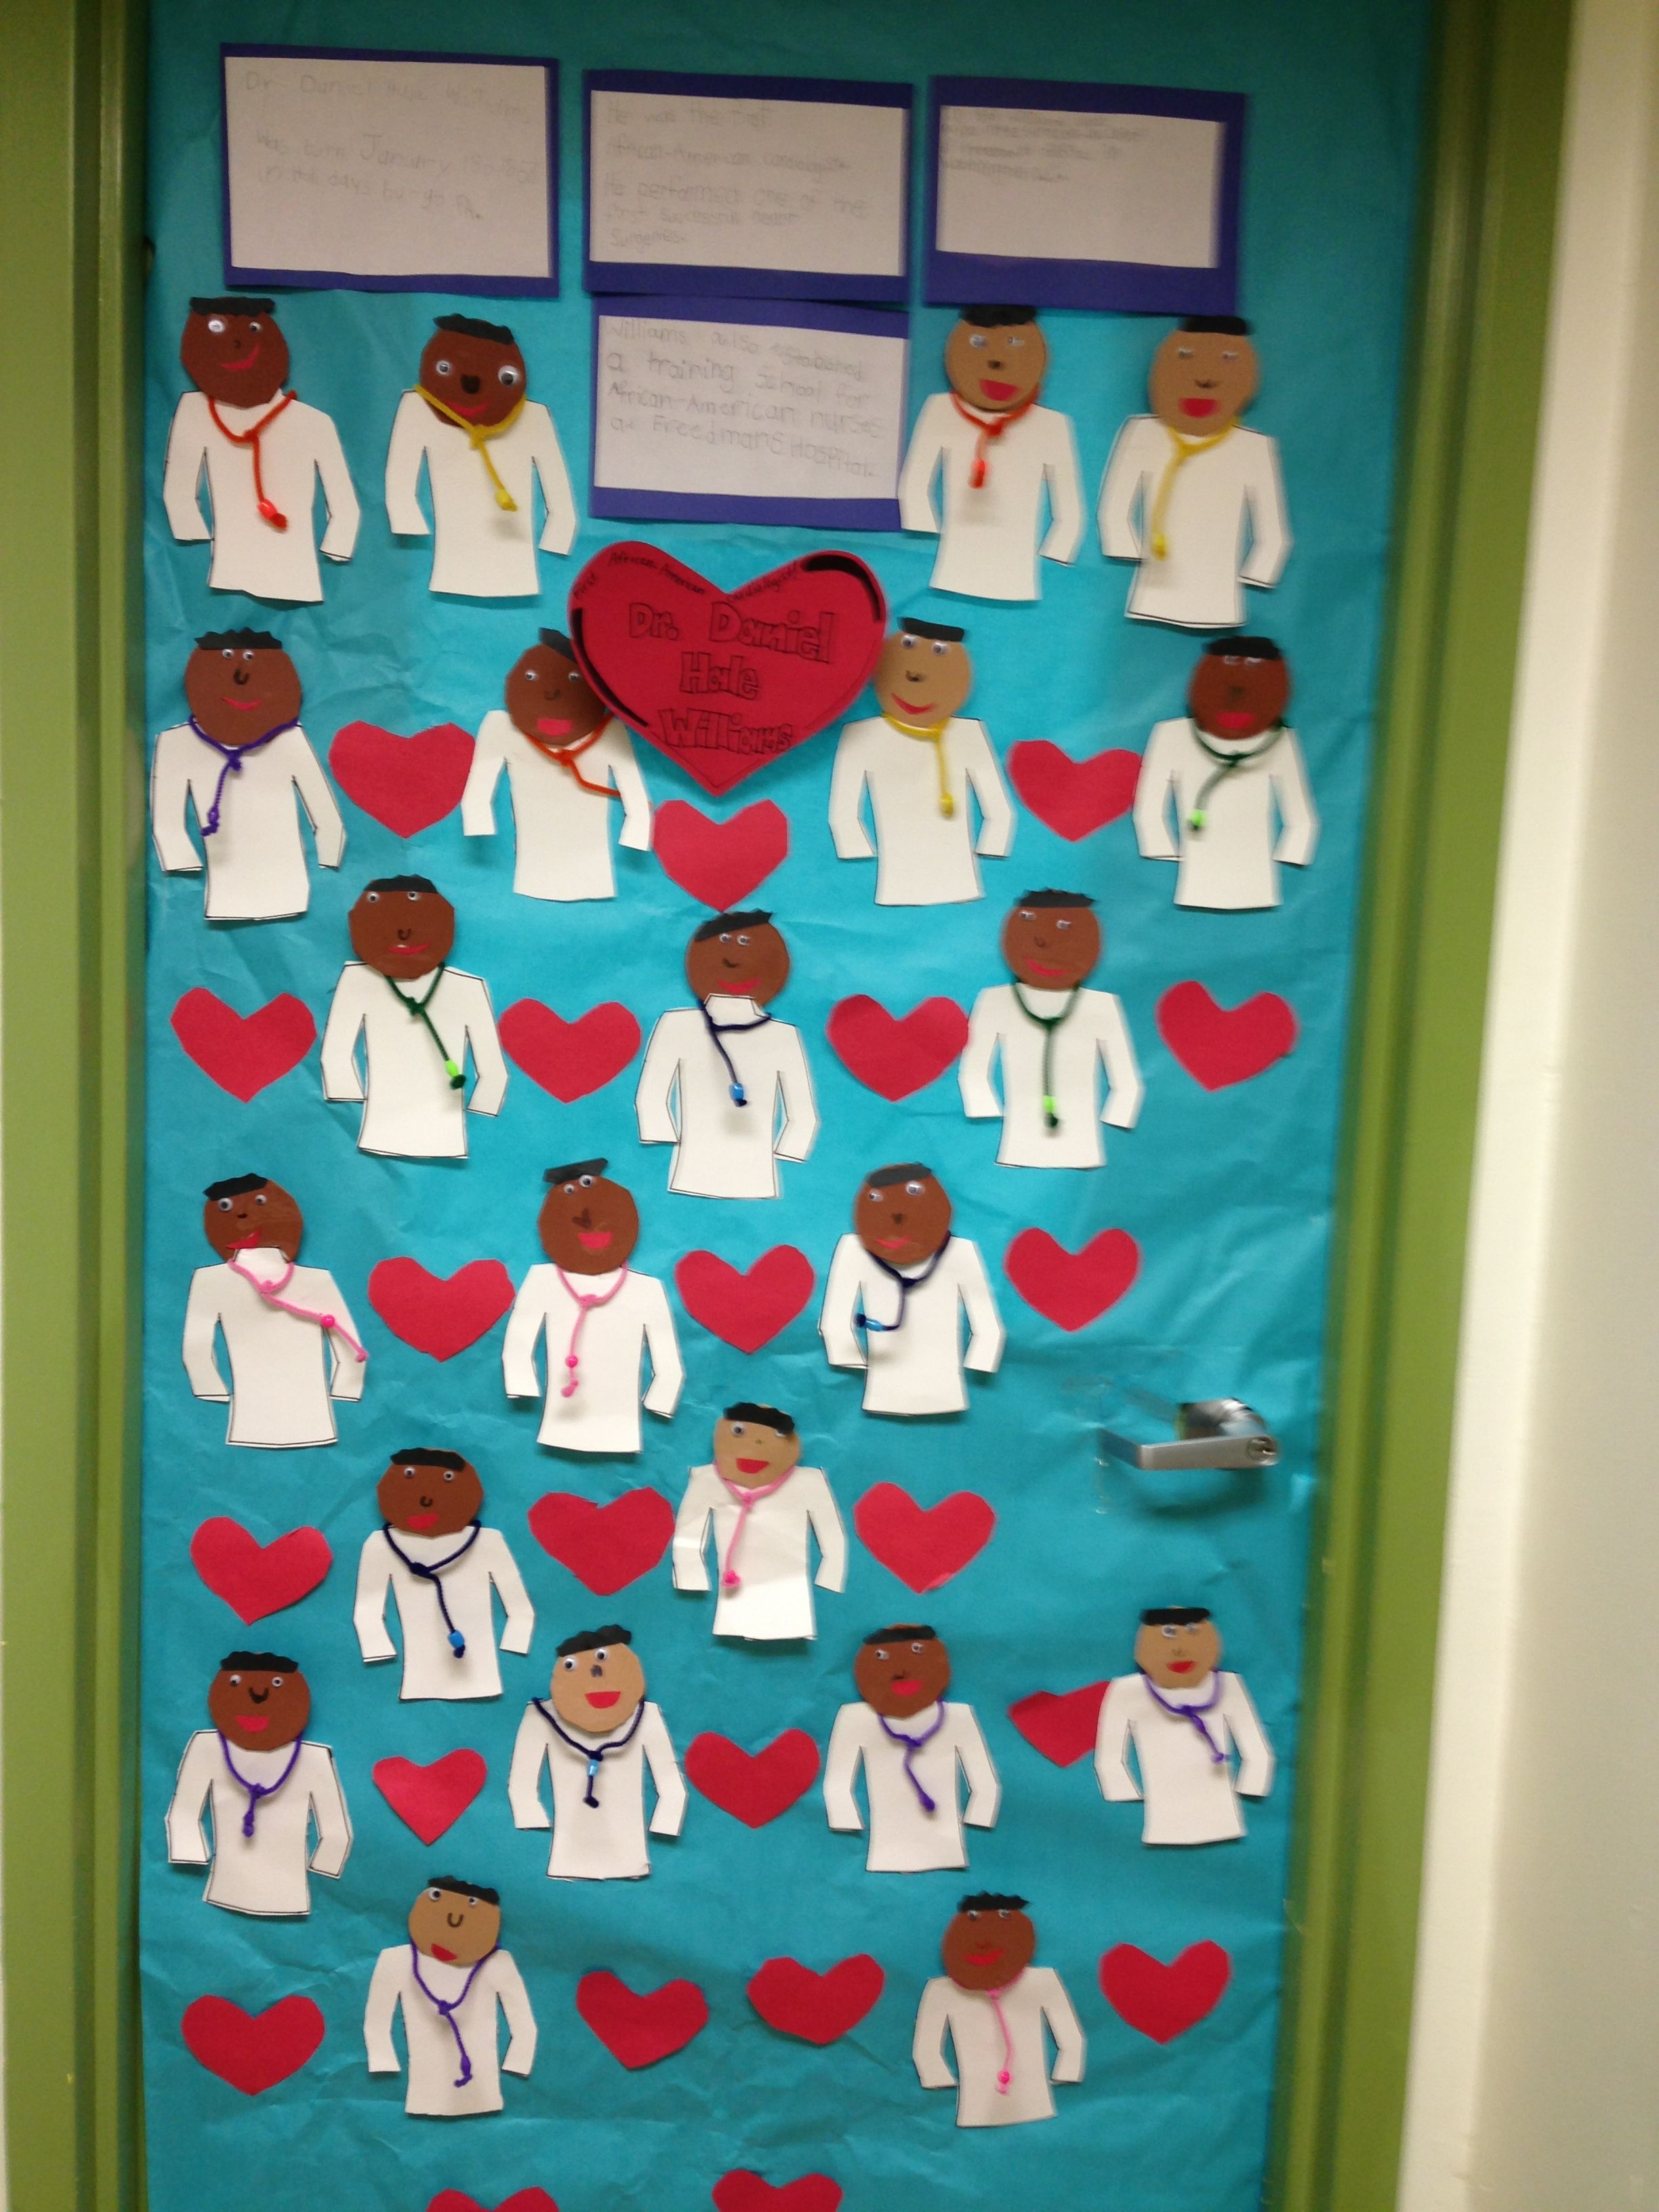 Black History Classroom Decorations : Black history door decorations pictures to pin on